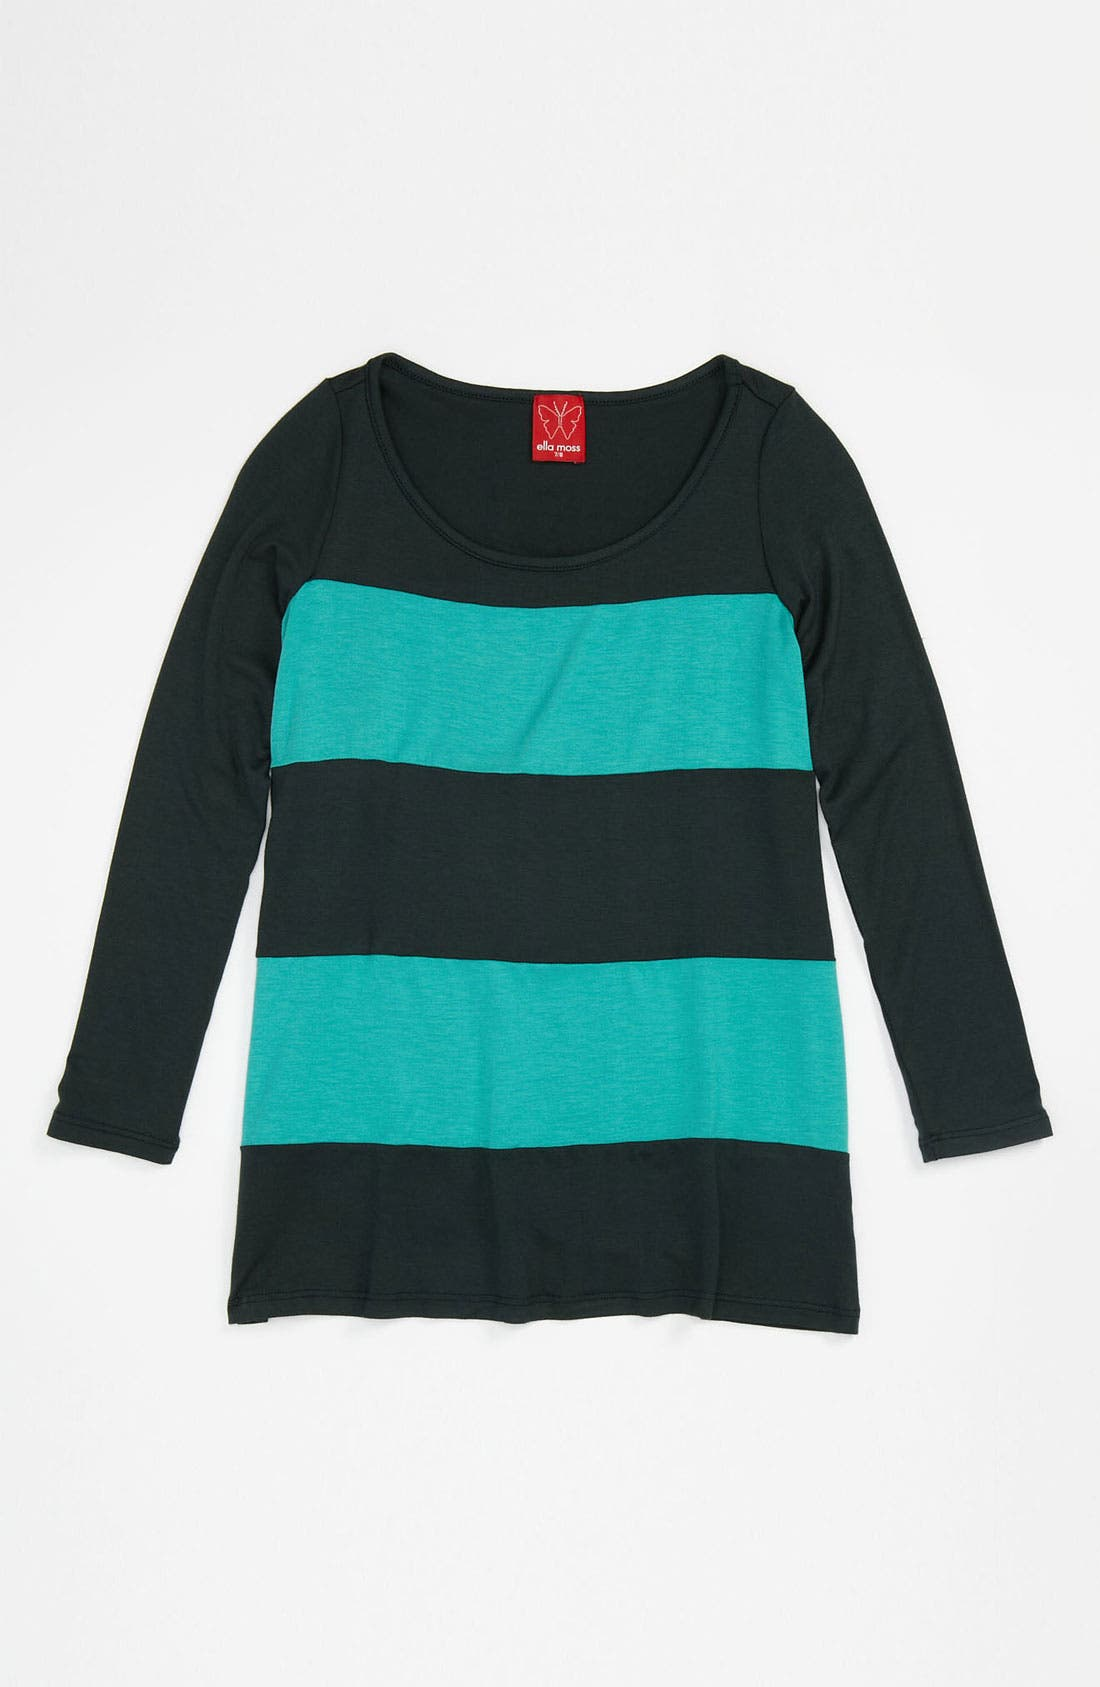 Alternate Image 1 Selected - Ella Moss Stripe Tunic (Big Girls)